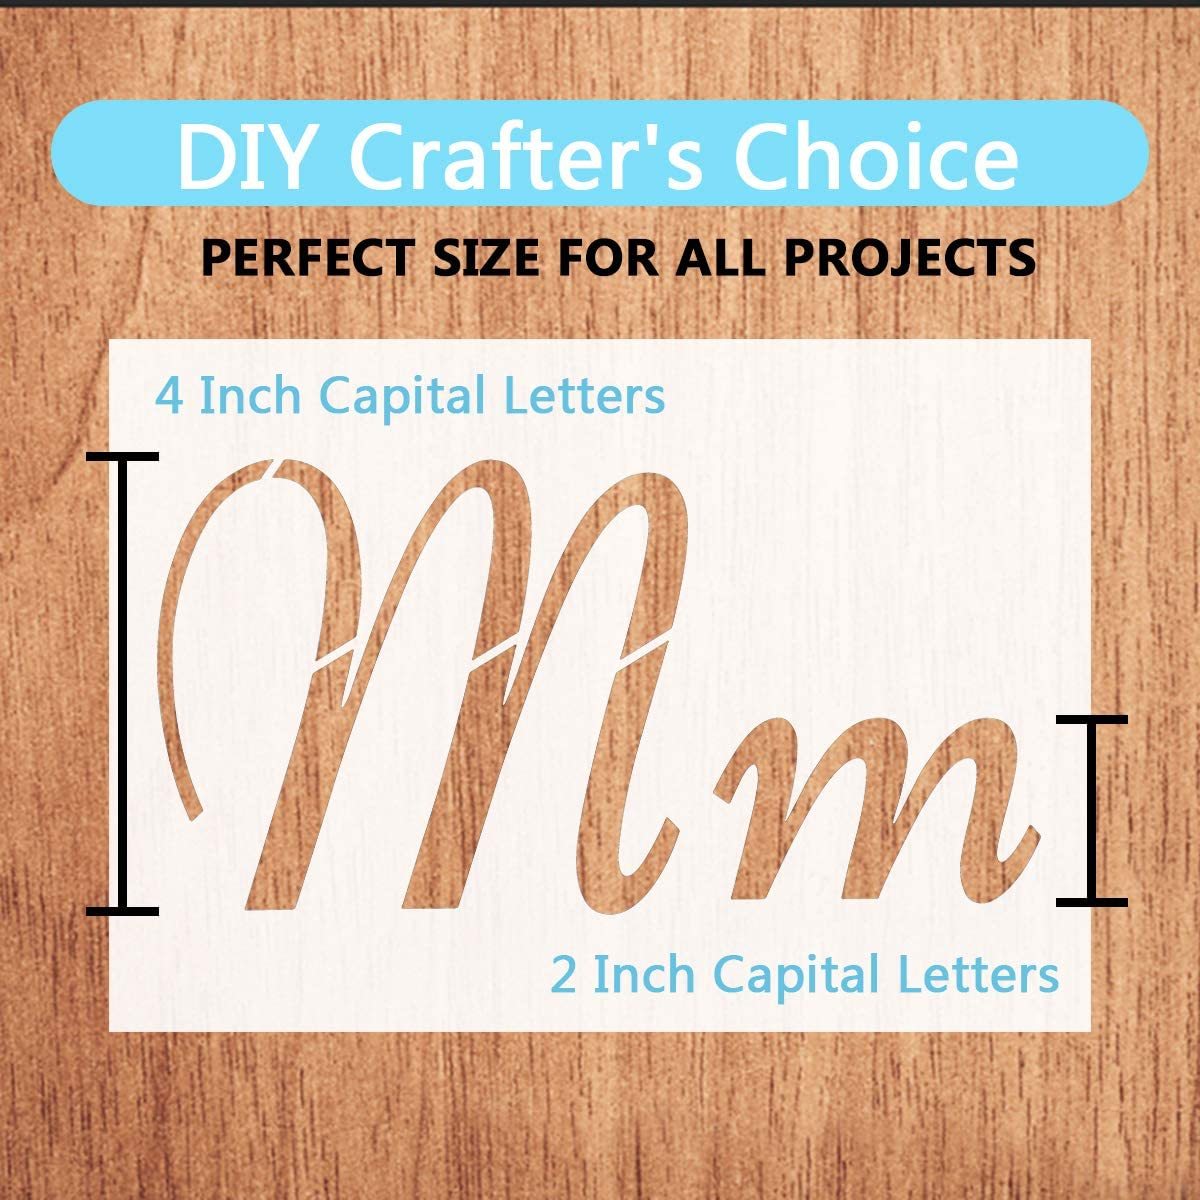 Reusable Plastic Number Templates Stencils for Art Drawing,Craft DIY Writing on Chalkboard,Wood,Signage,Bistro,Fabric Garden Flag Stone-40 Pieces,80 Pattern Larger Alphabet Letter Stencils